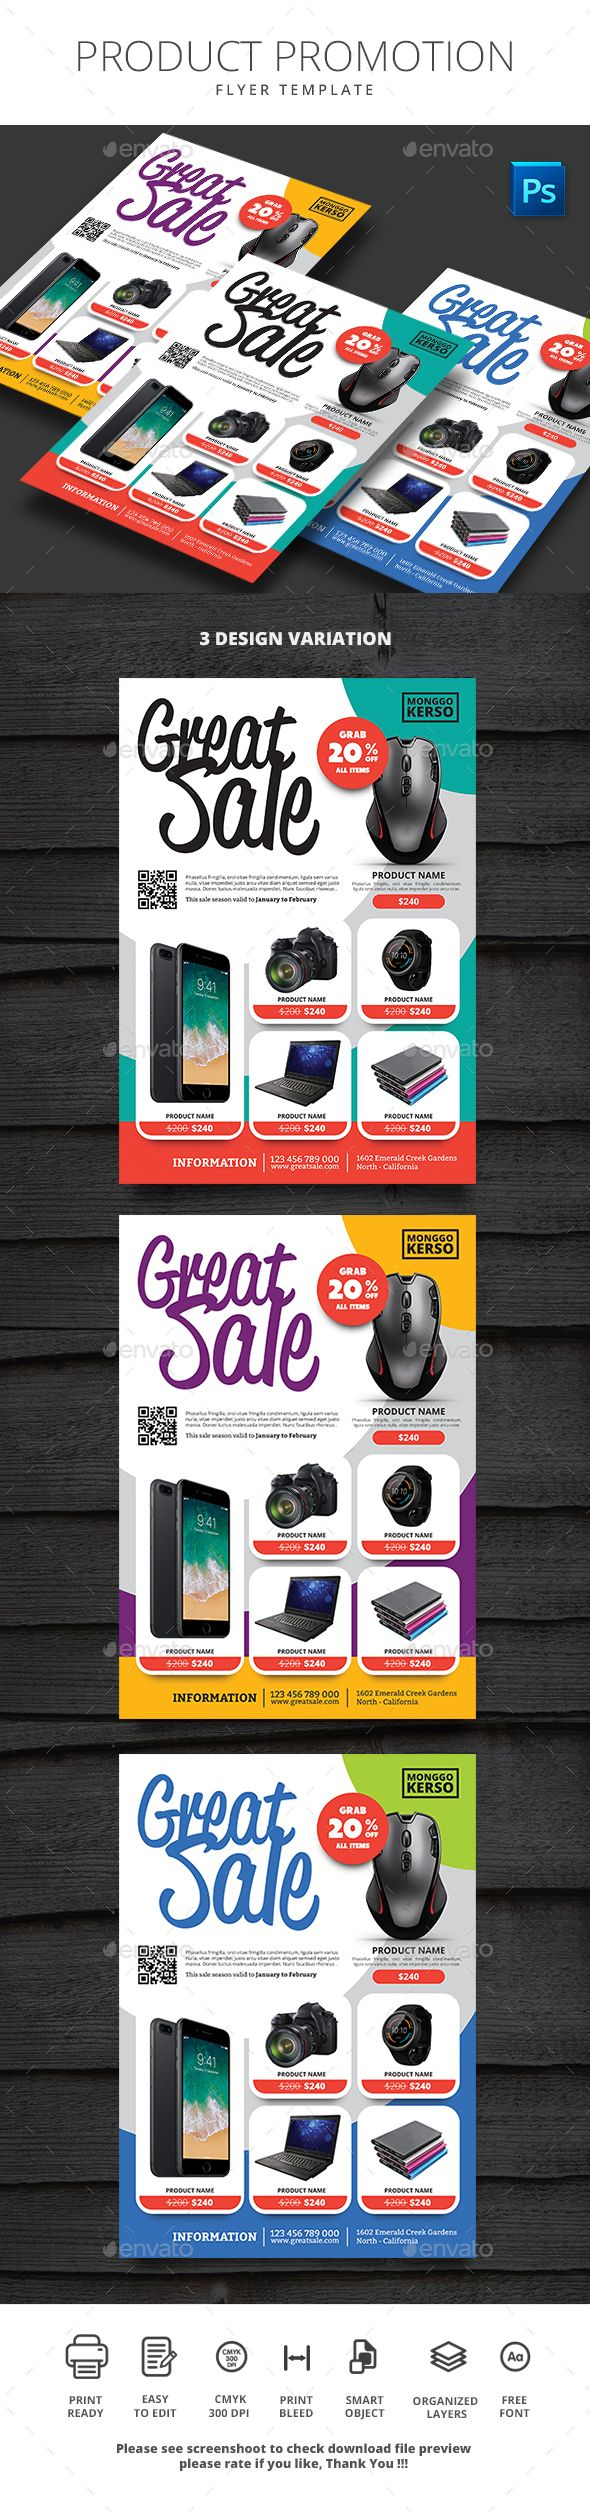 Product Promotion Flyer File Features : Size A4 210x290mm   Bleed area CMYK / 300 dpi Easy to edit text Well organized PSD file 3 Alternative colors Photos are not included Please see screenshoot to check download file preview Free Font open-sans, reklame-scri